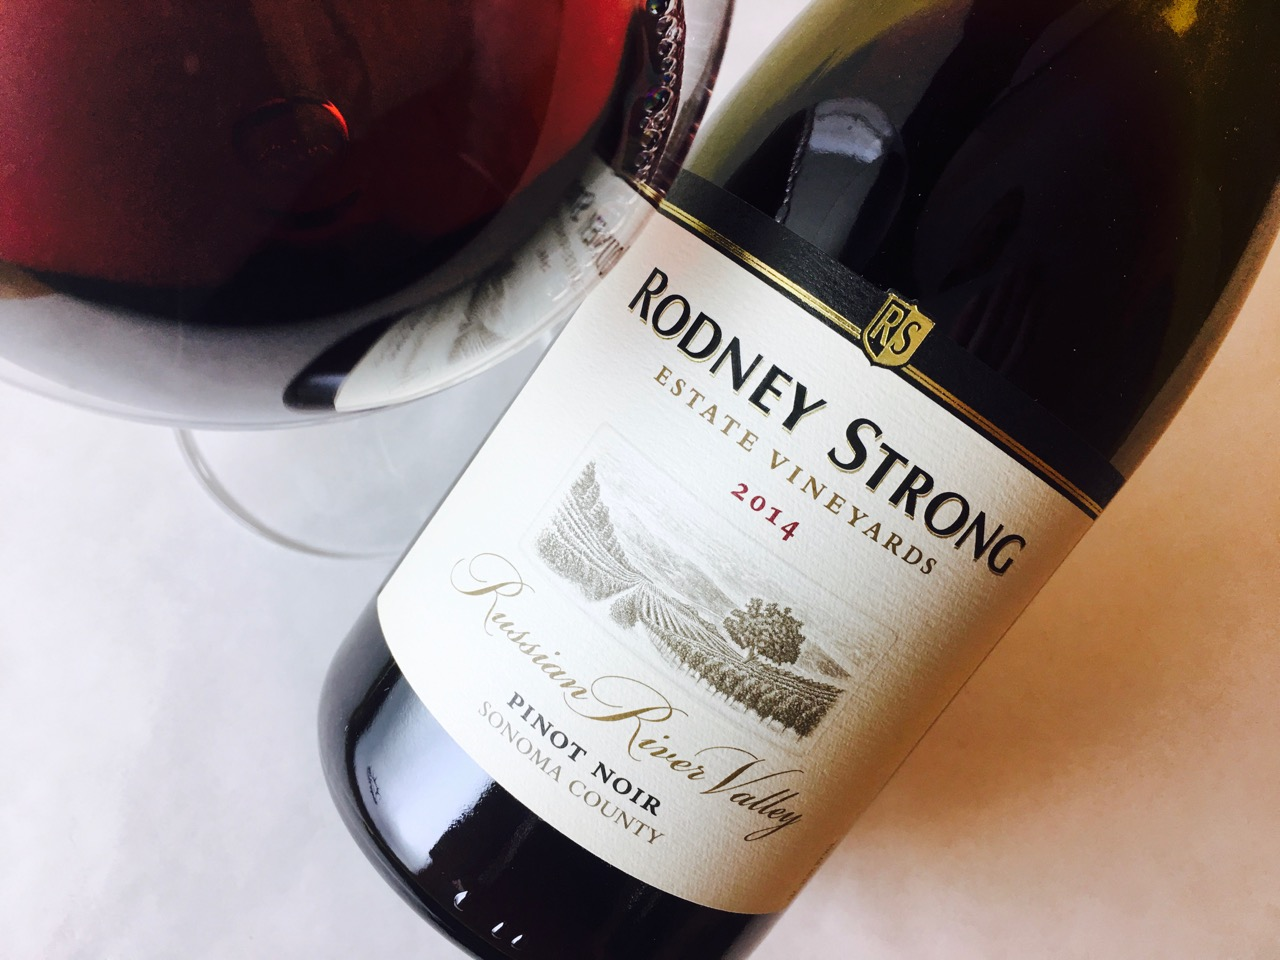 2014 Rodney Strong Pinot Noir Russian River Valley